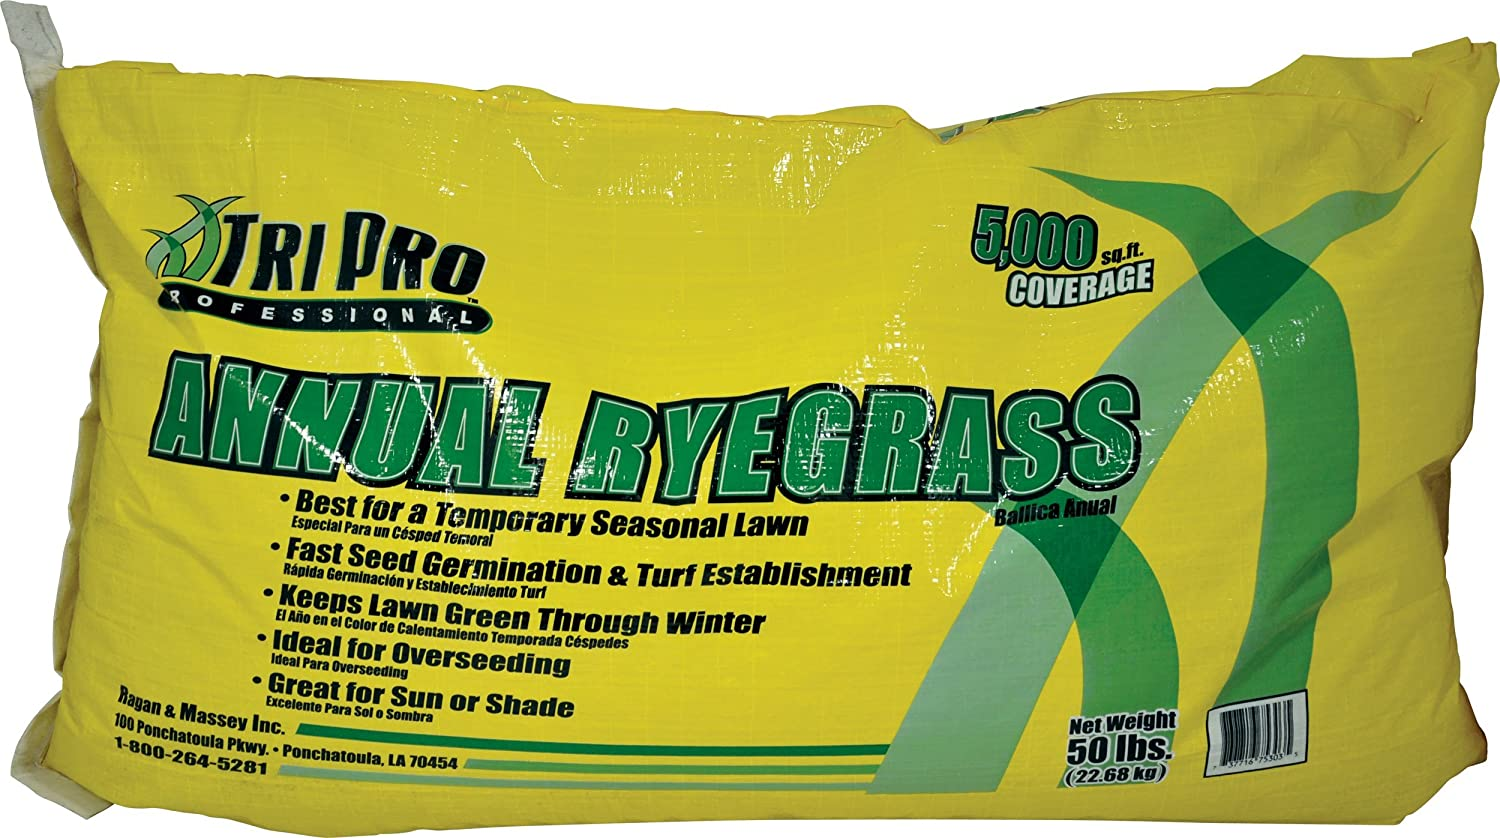 TriPro Annual Ryegrass Seed